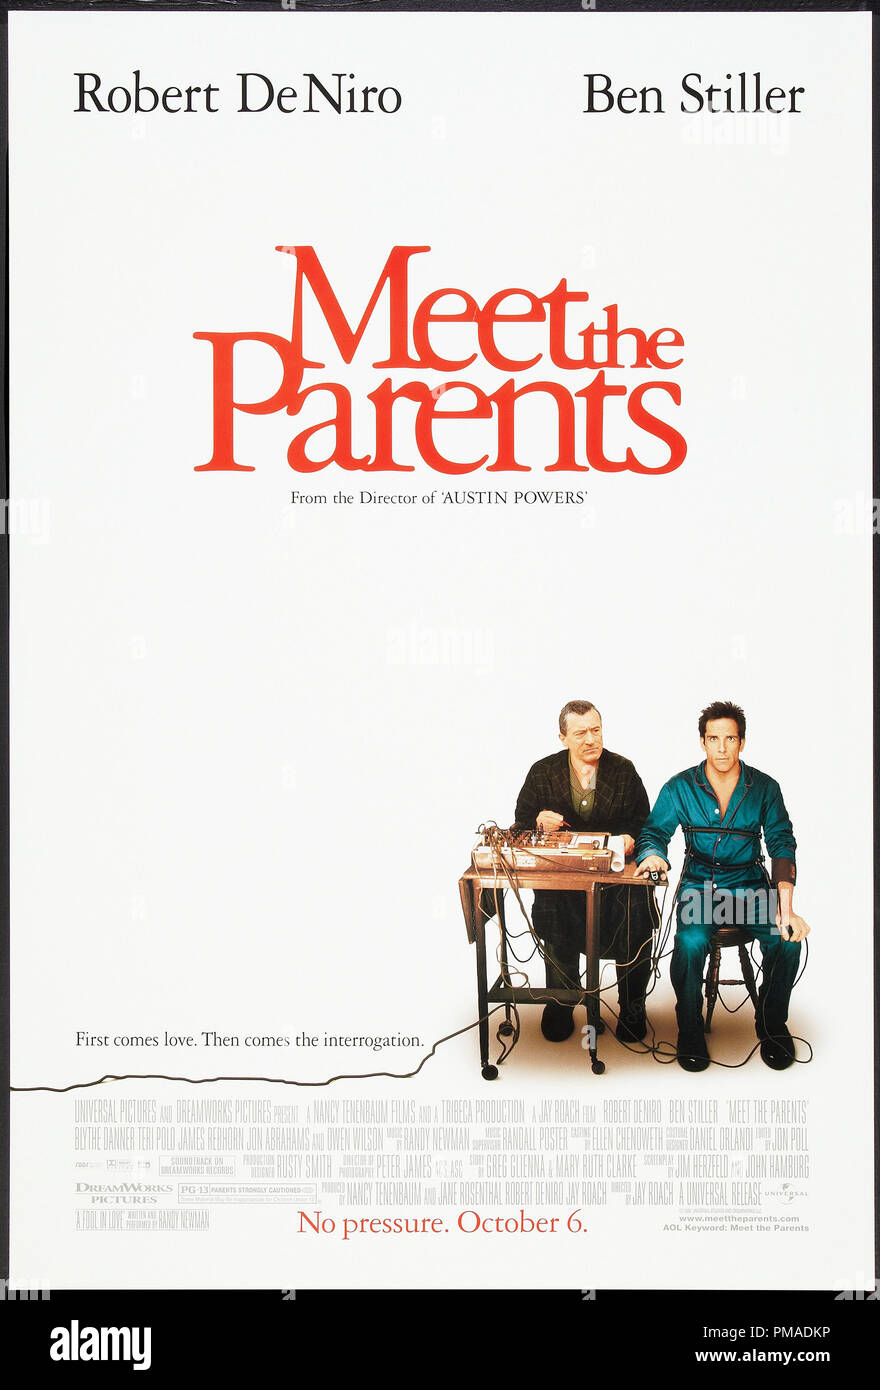 'Meet the Parents' - US Poster 2000 Universal Pictures  Robert De Niro, Ben Stiller  File Reference # 32509_241THA - Stock Image